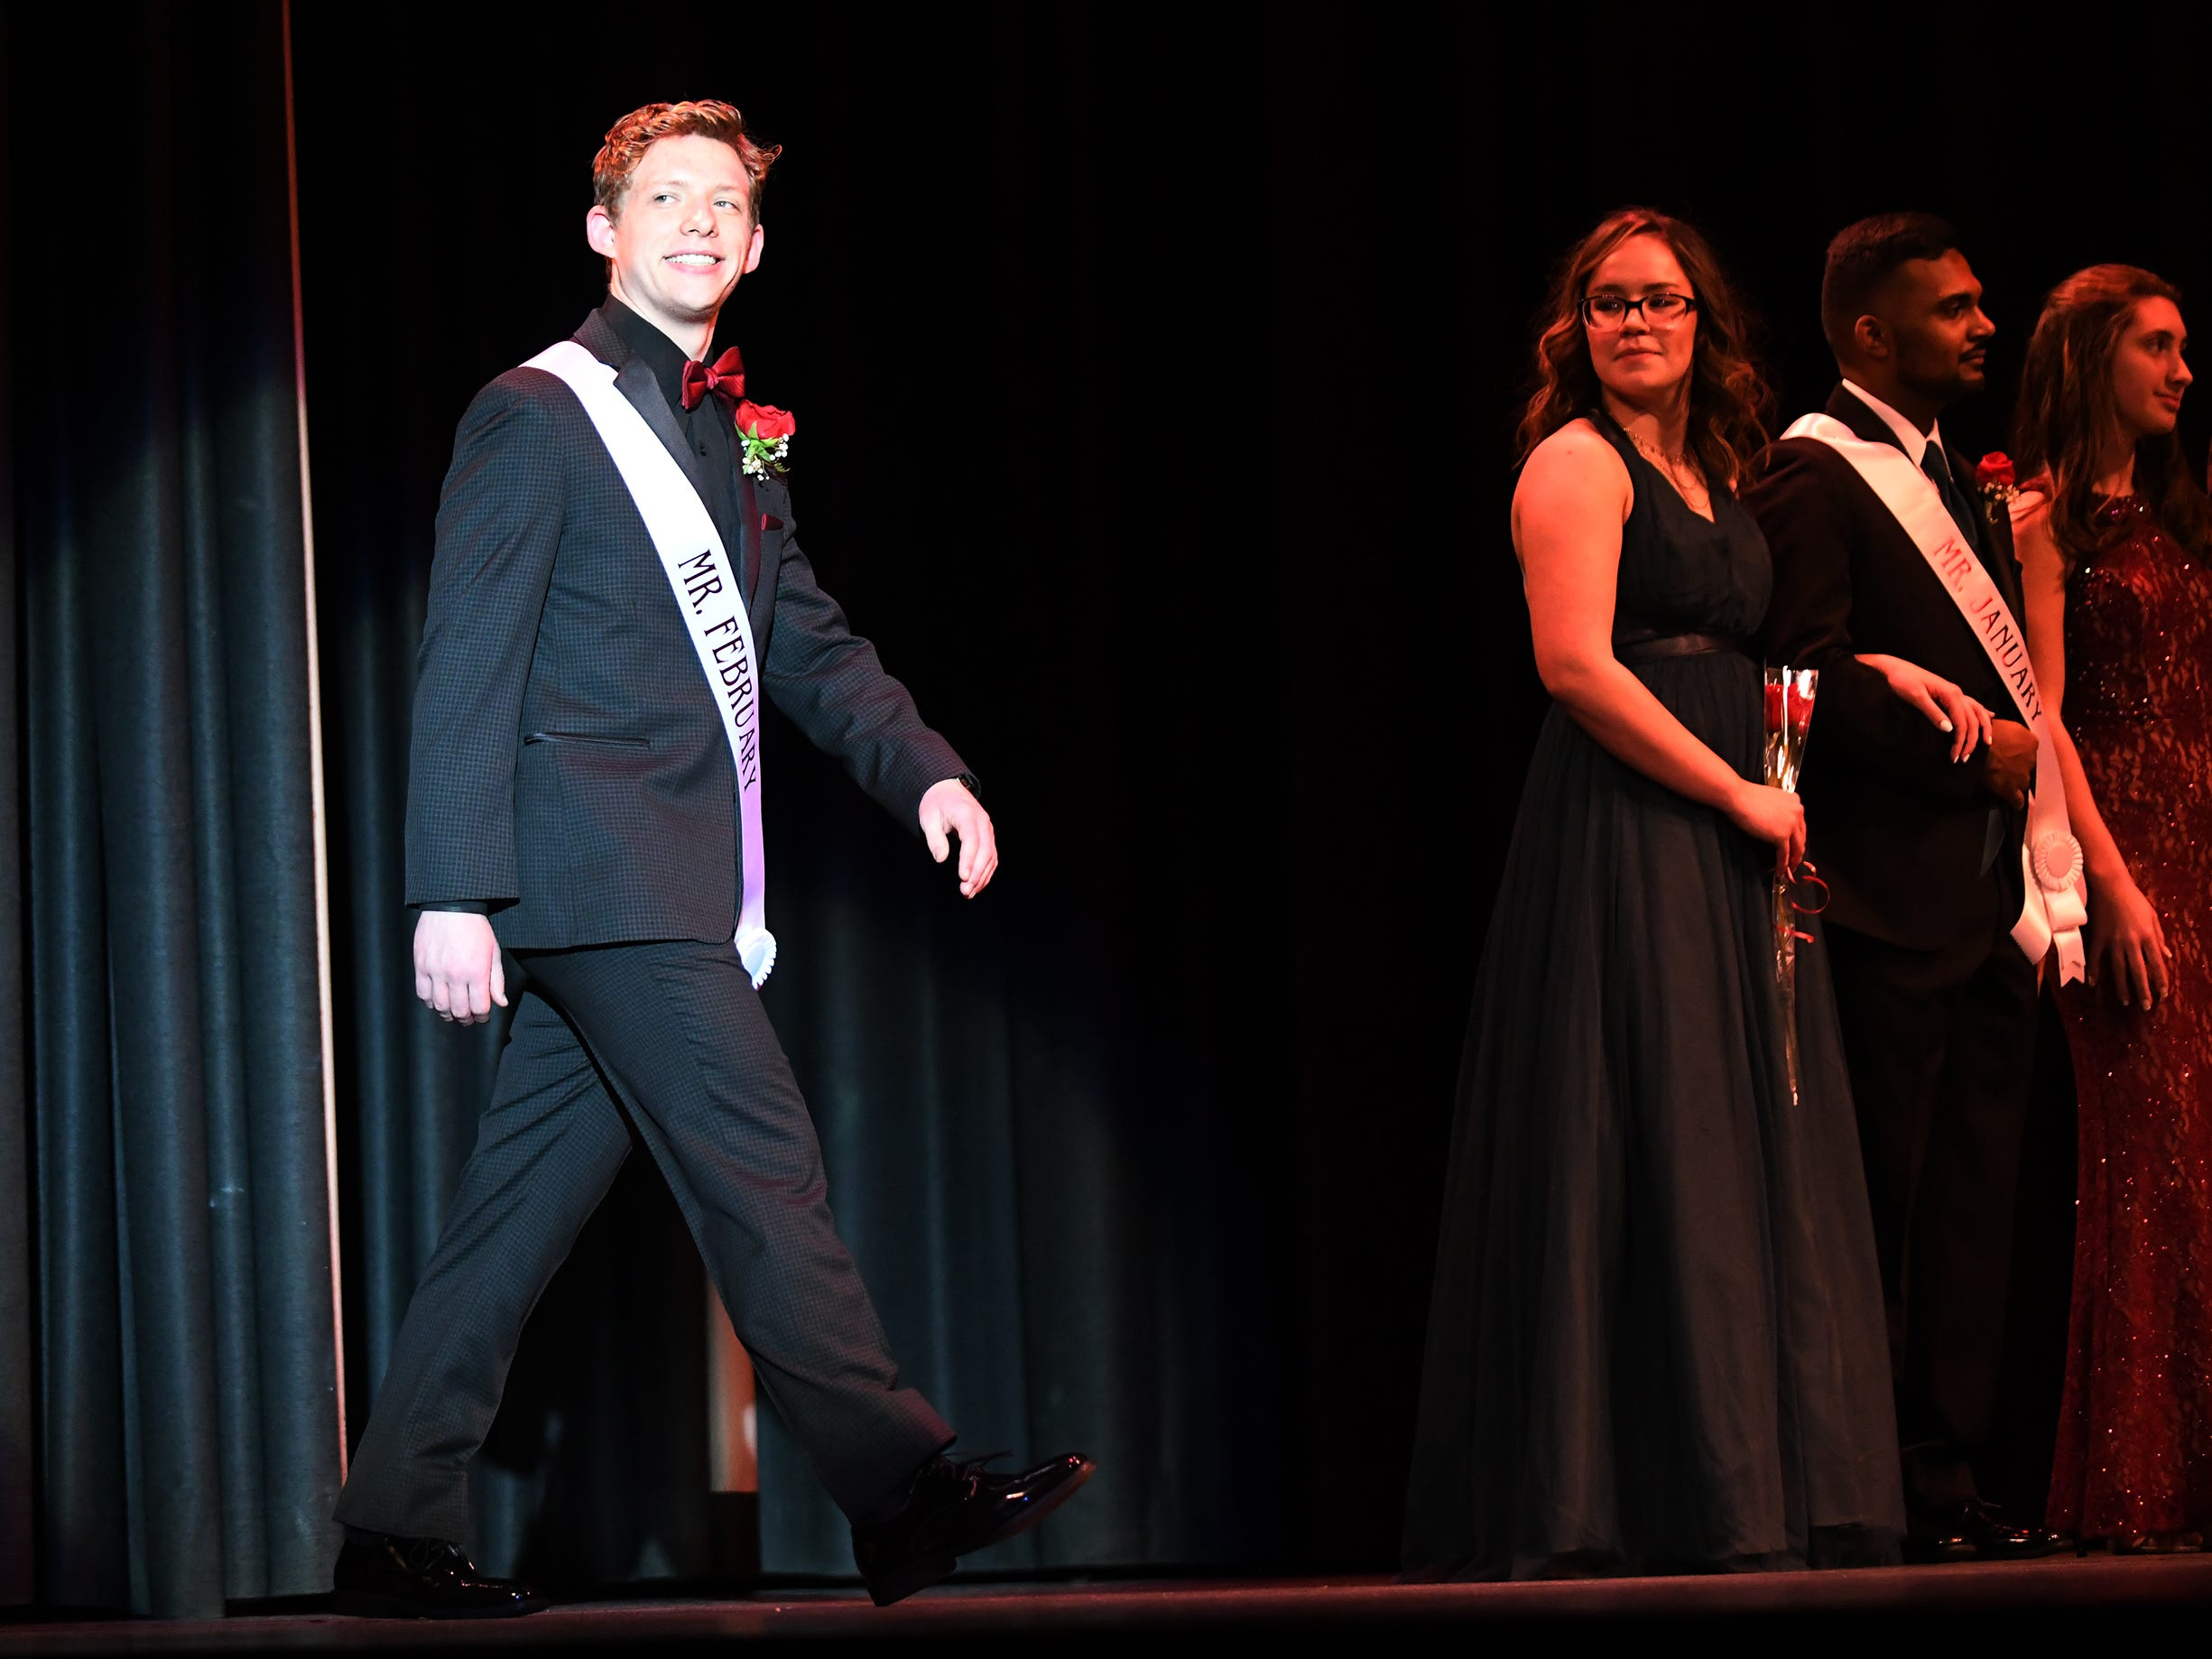 Tanner Bushman shows off his formal wear during Mr. Vineland 2019 at Vineland High School on Thursday, January 10.